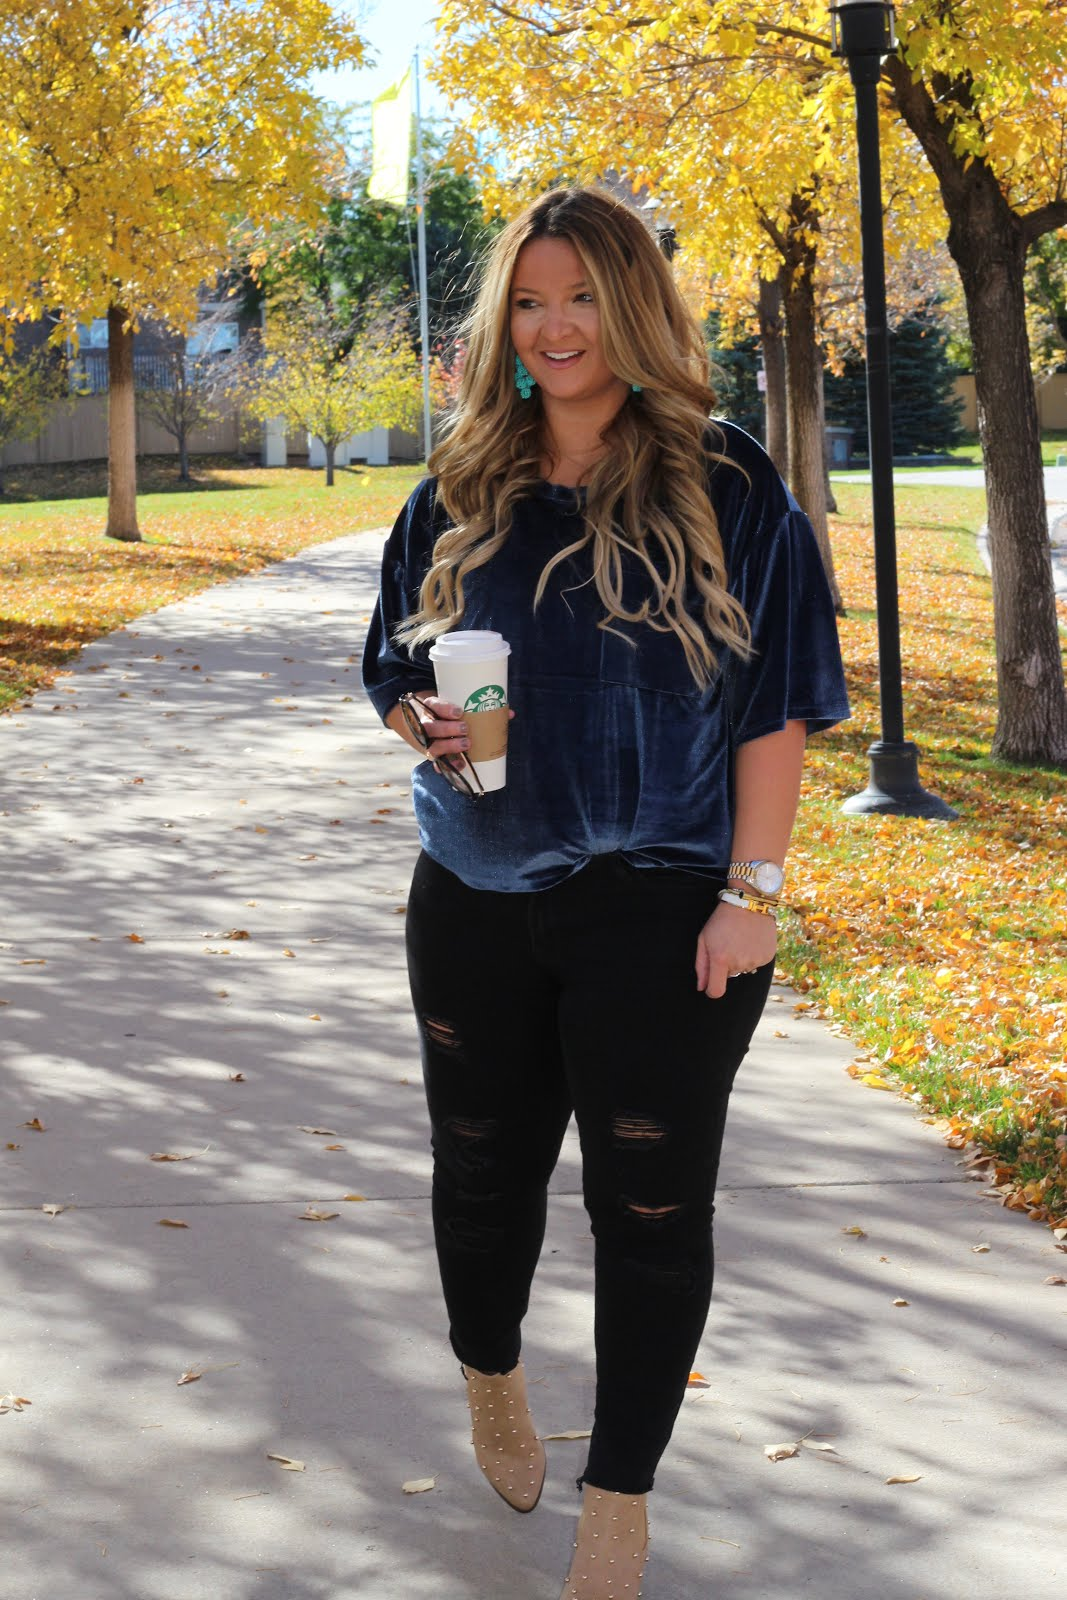 Her Blue Velvet top by Colorado fashion blogger Delayna Denaye